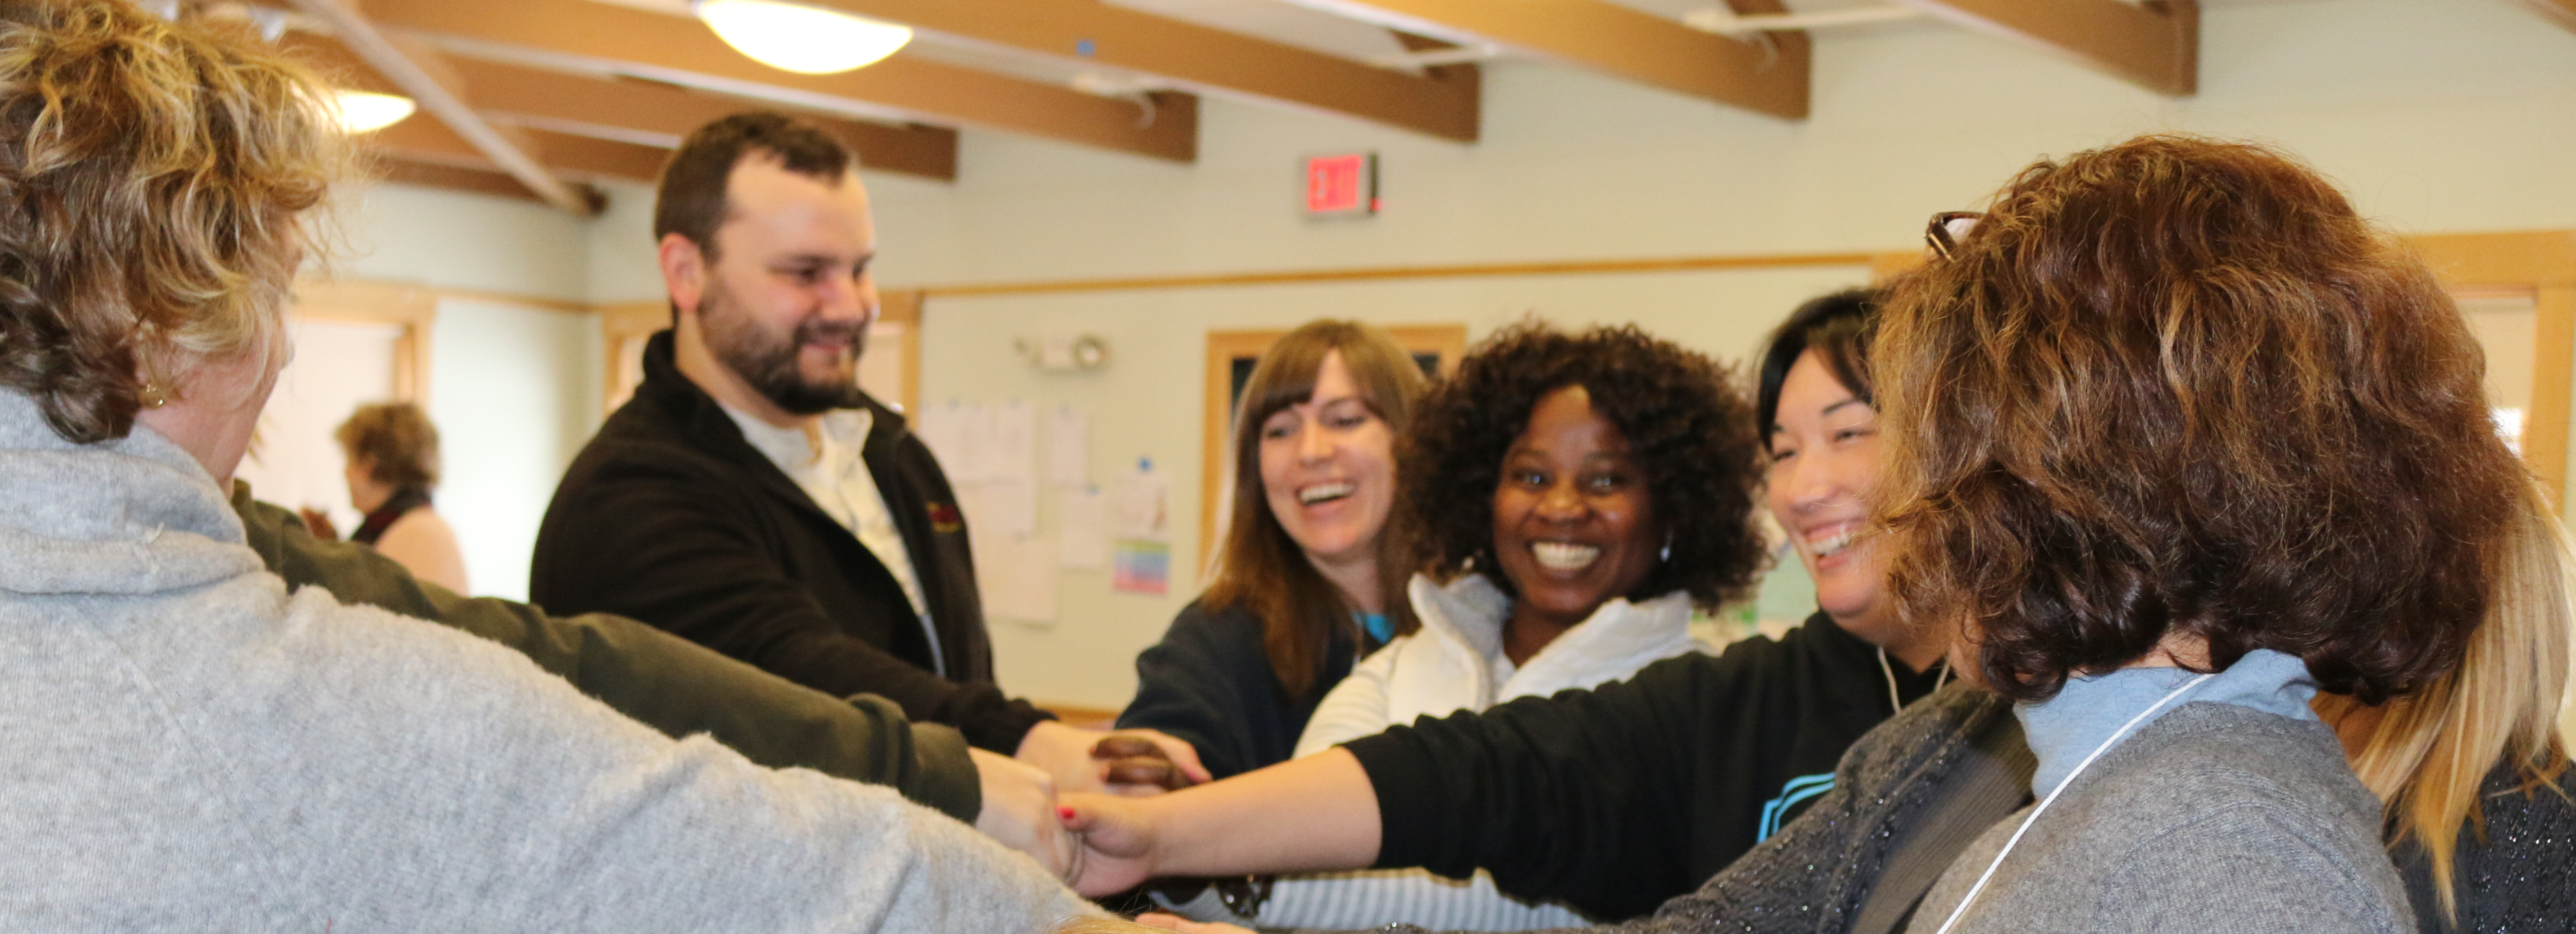 NH Leadership Series graduates gather in a circle with their hands centered in anticipation of a group cheer..